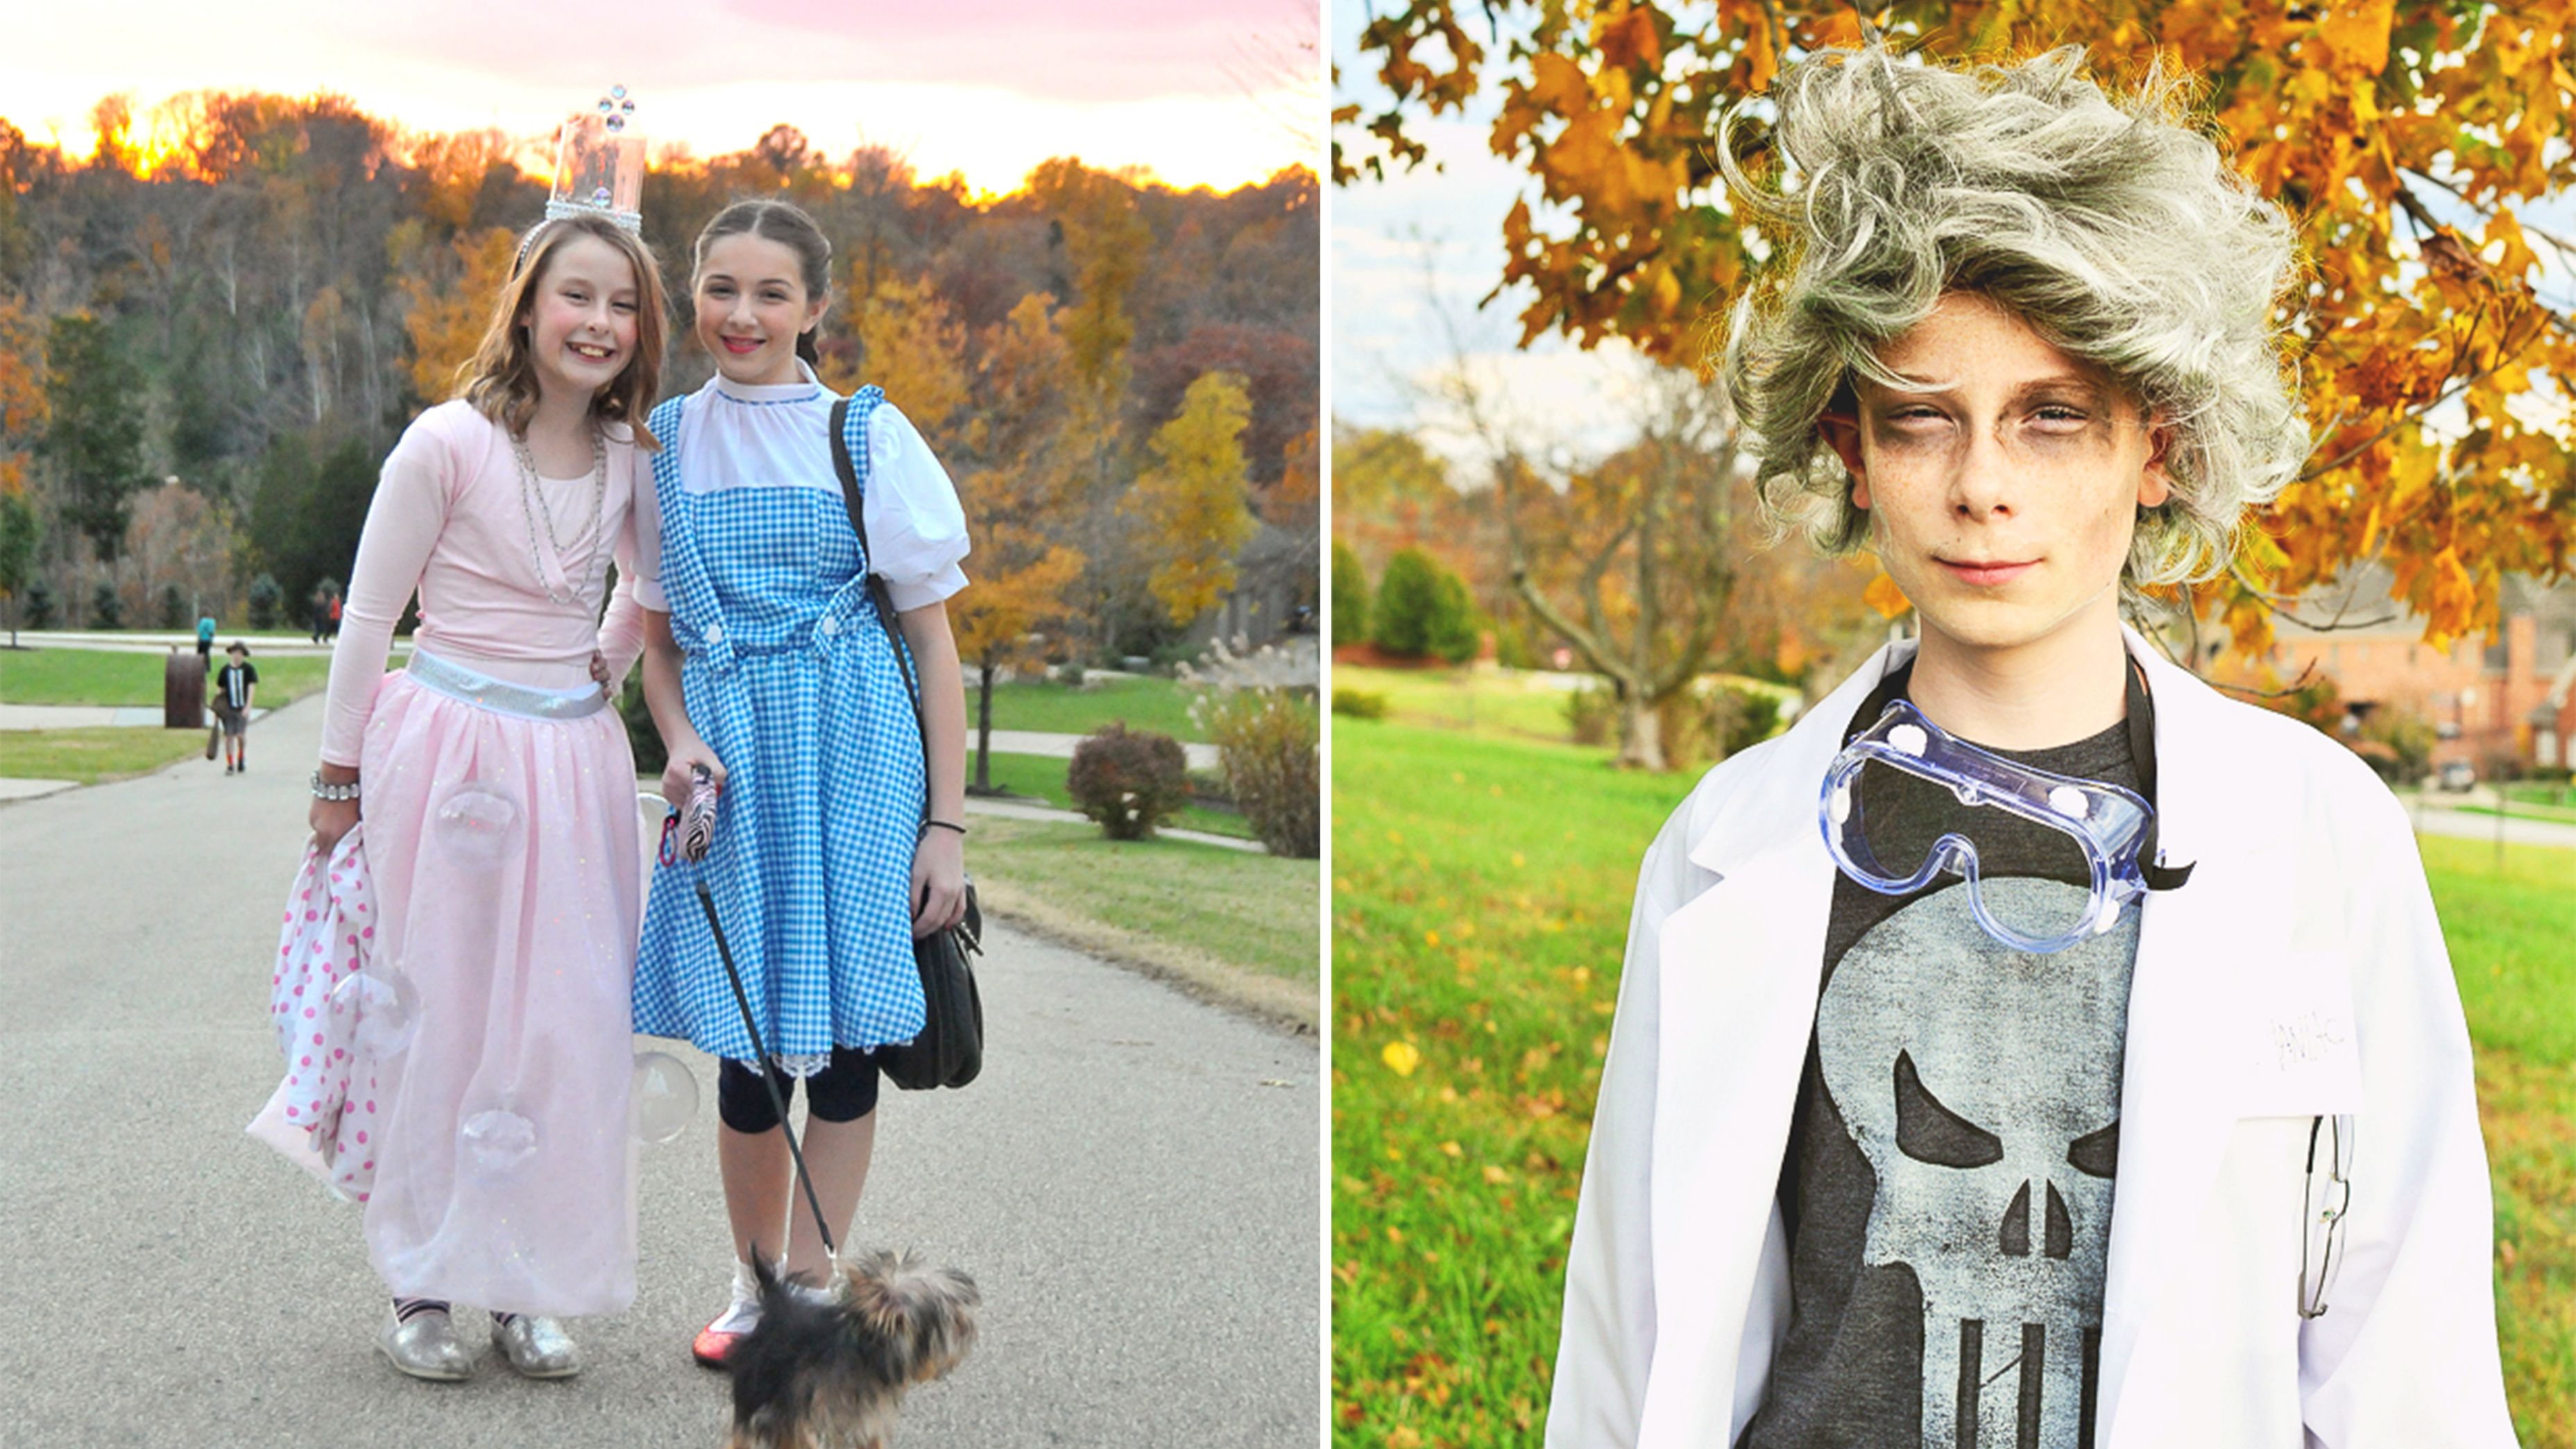 diy halloween costumes for tweens  sc 1 st  Country Living Magazine & 12 Tween Halloween Costumes - DIY Costumes for Tween u0026 Teen Girls u0026 Boys